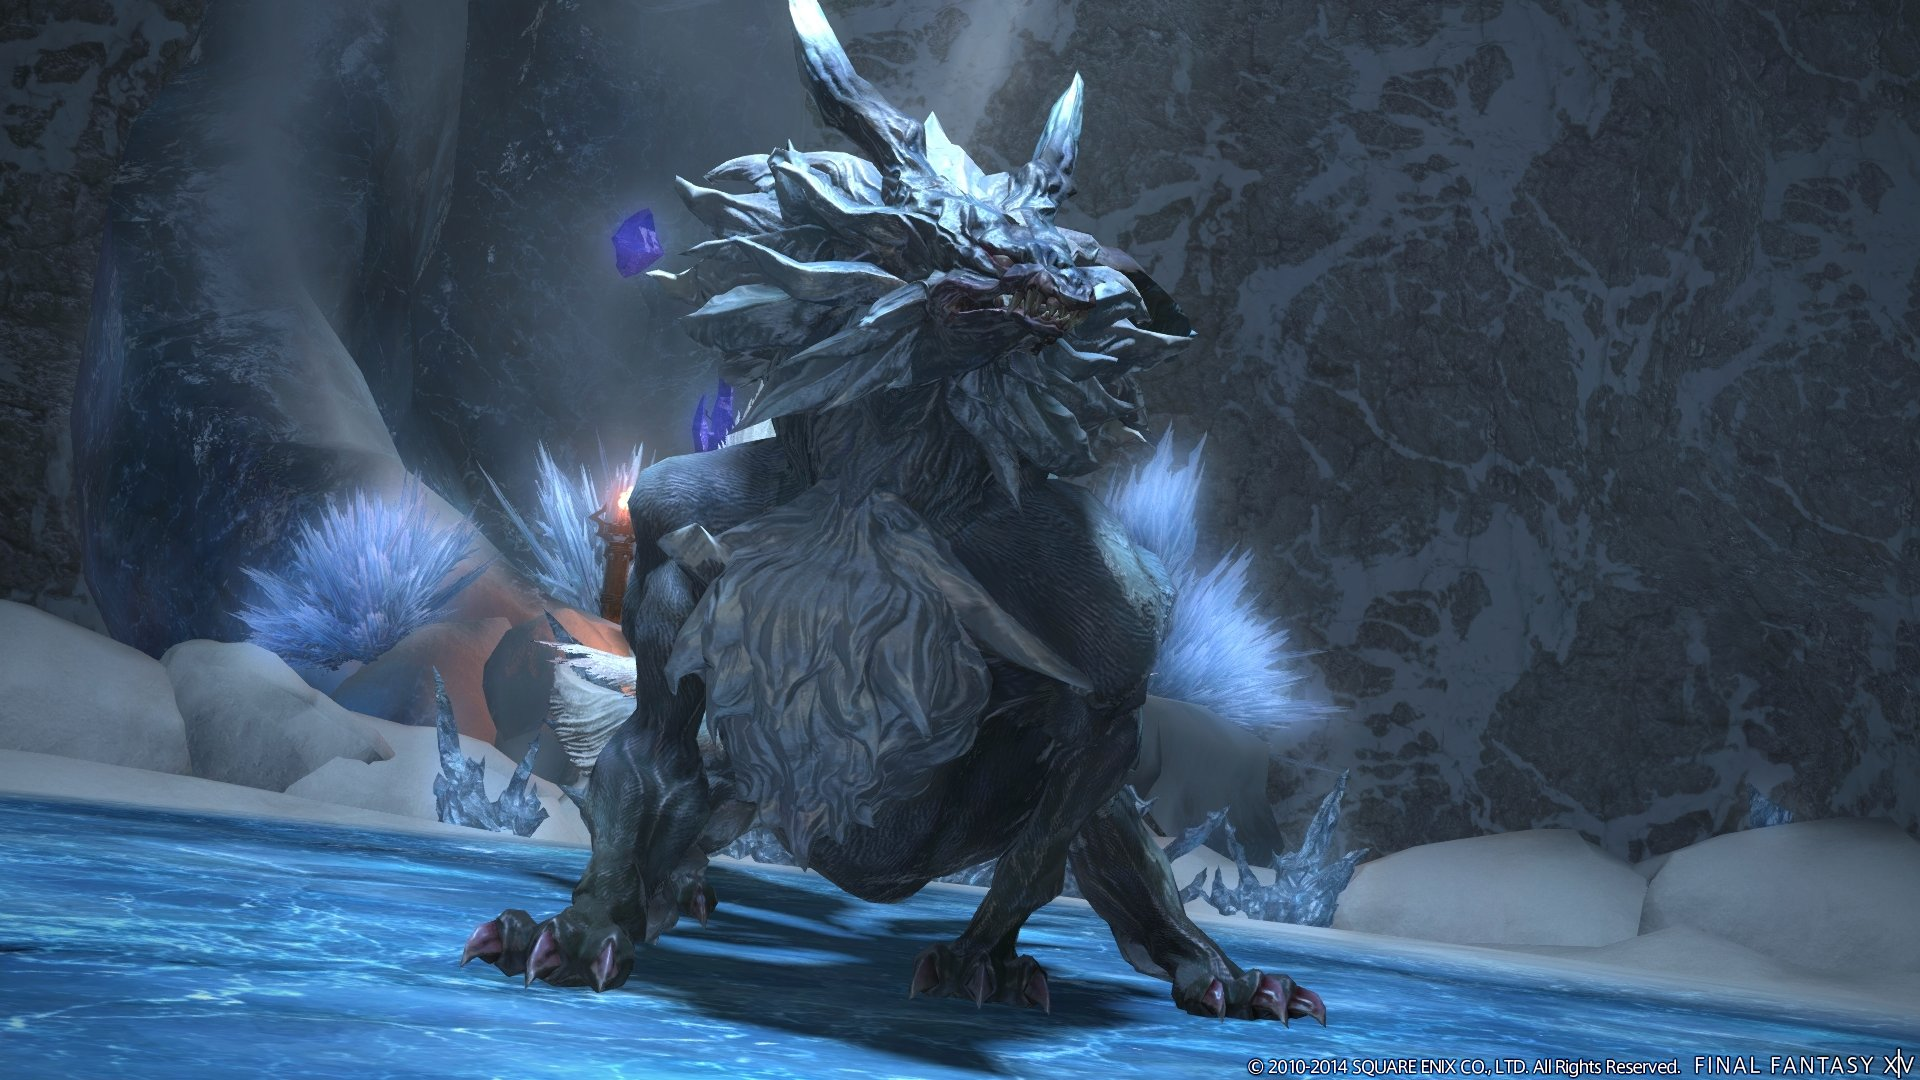 Like Diabolos before him, Fenrir makes his debut in Final Fantasy XIV as a boss in the new Snowcloak dungeon.